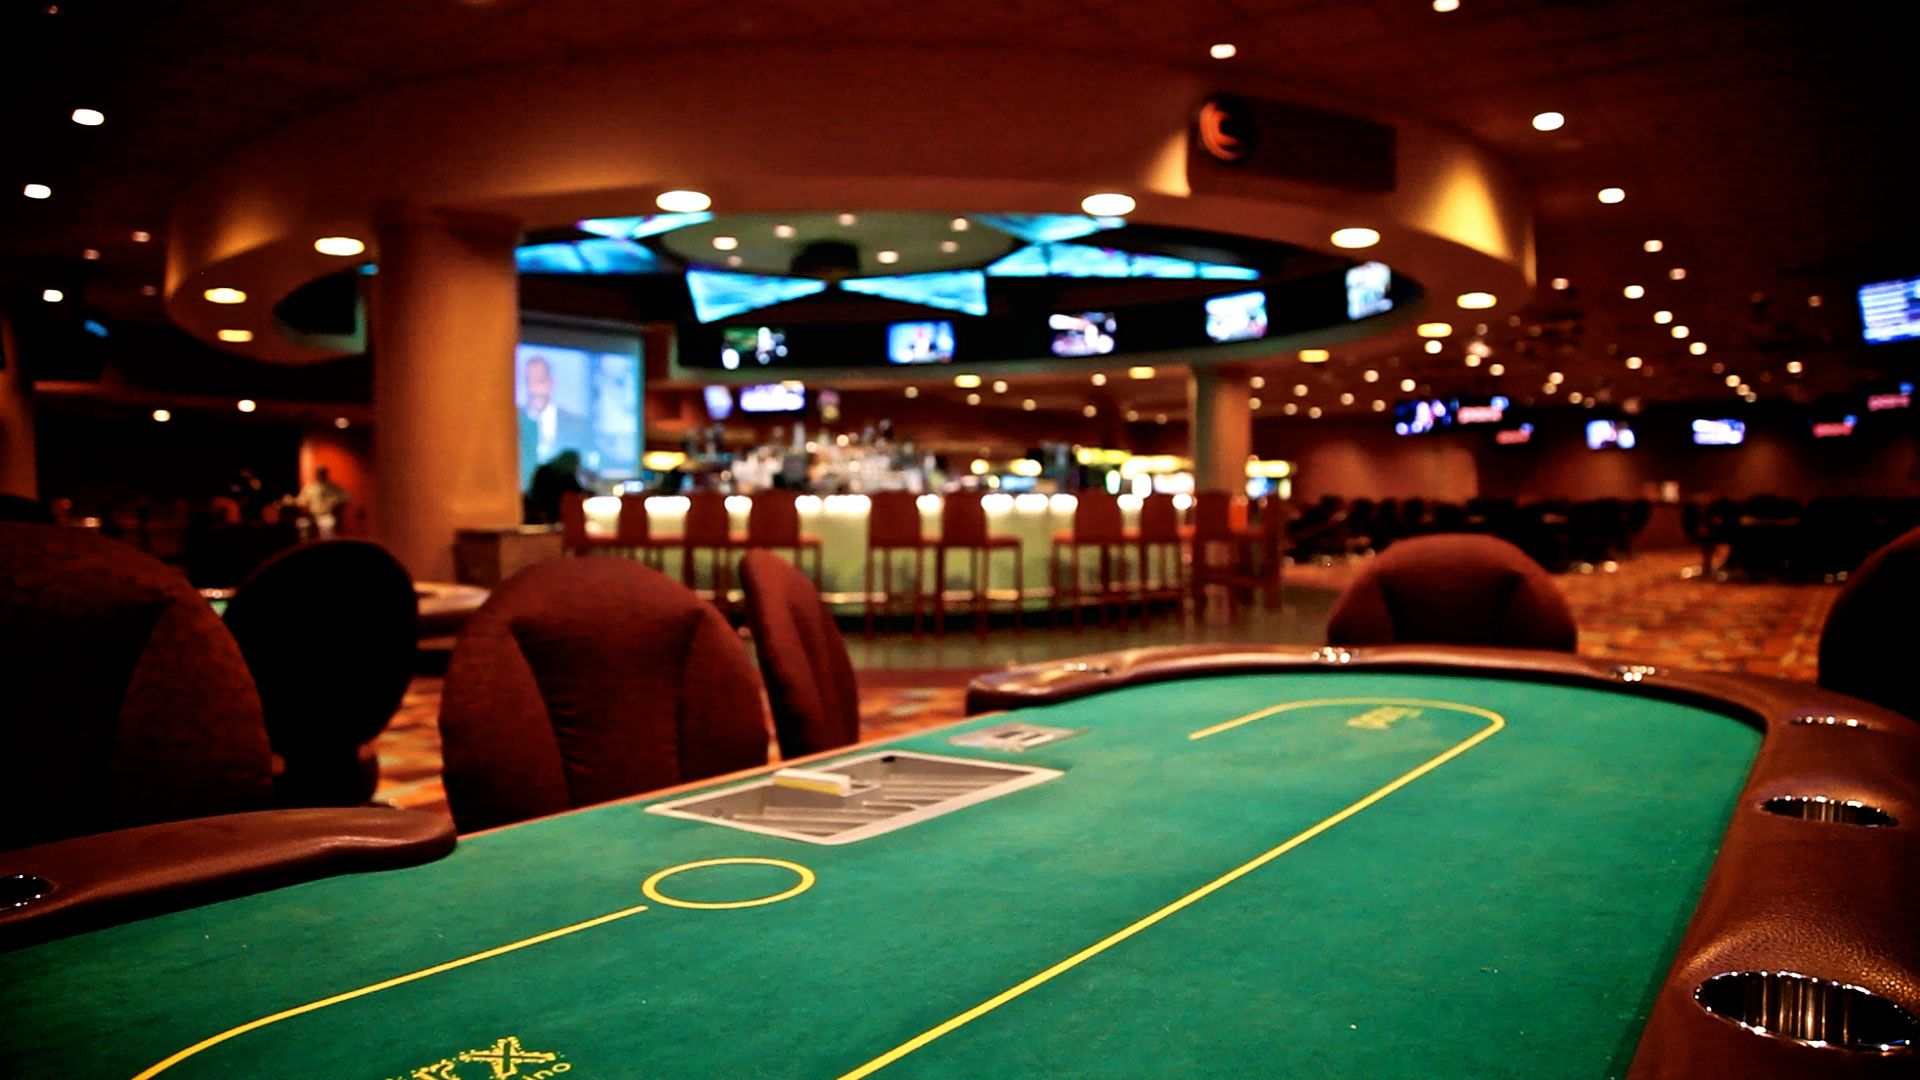 How To Start Casino With Less Than $100